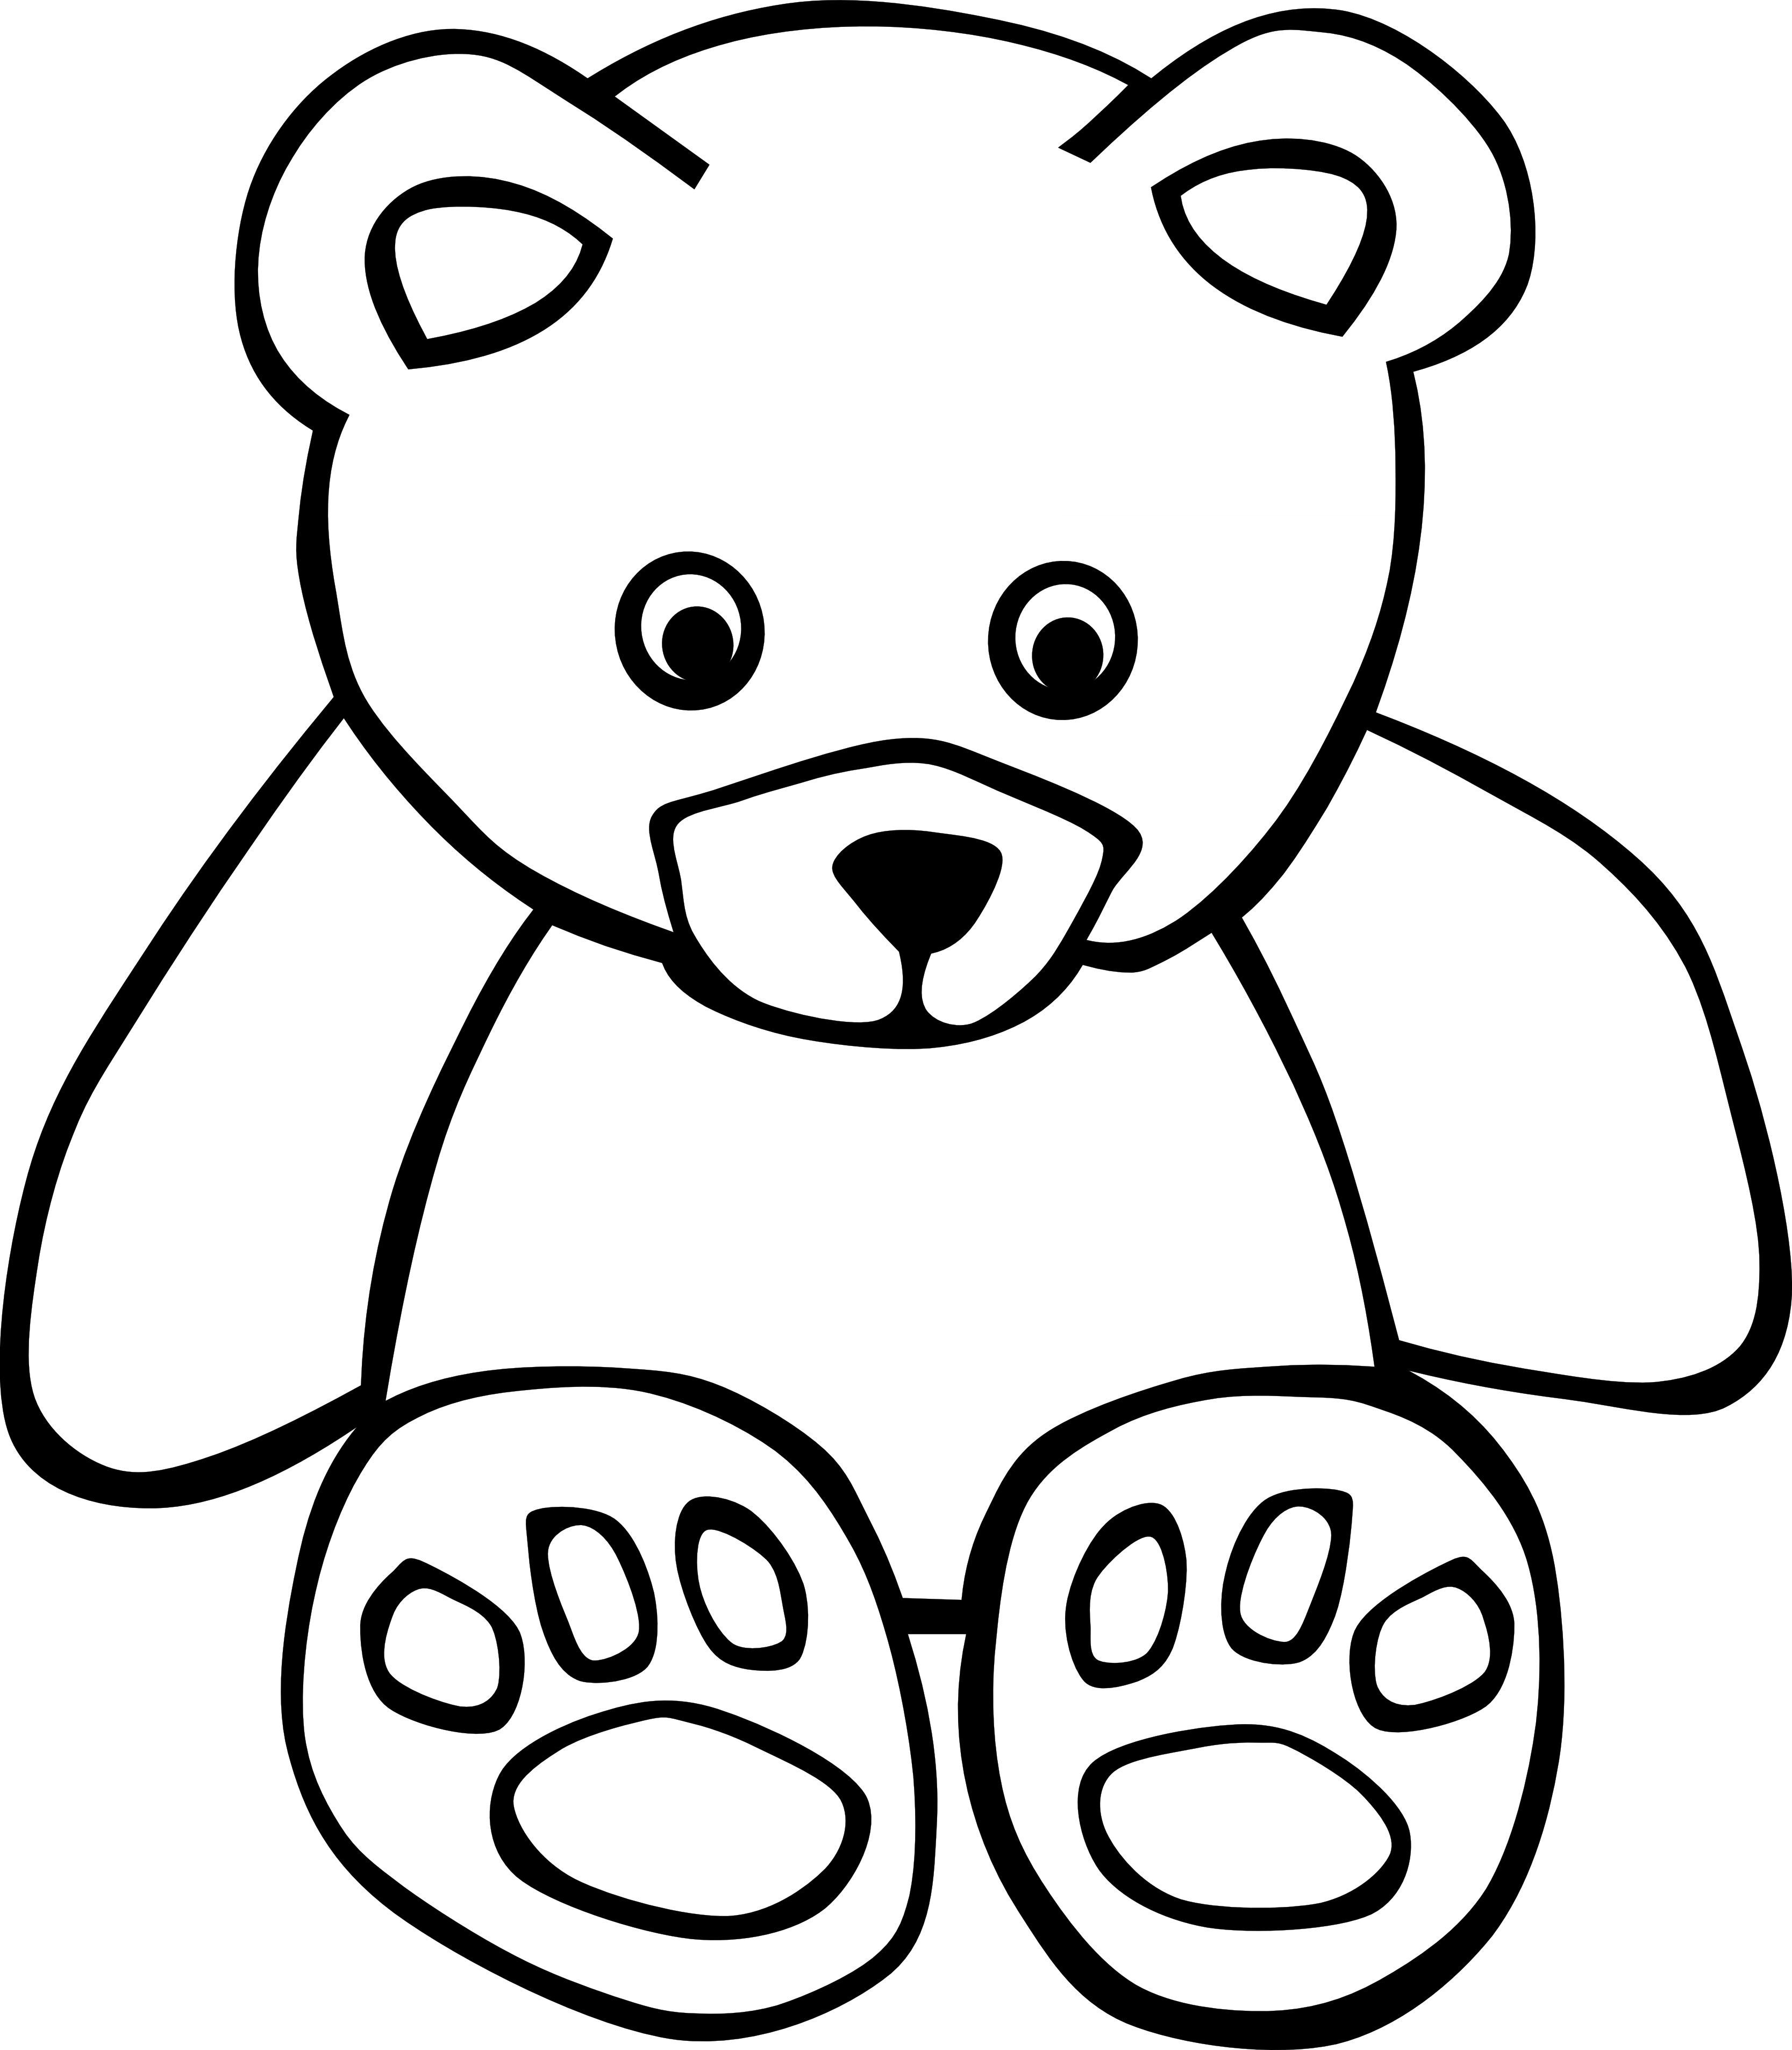 png teddy bear black and white transparent teddy bear black and rh pluspng com jungle animal clipart black and white baby animal clipart black and white